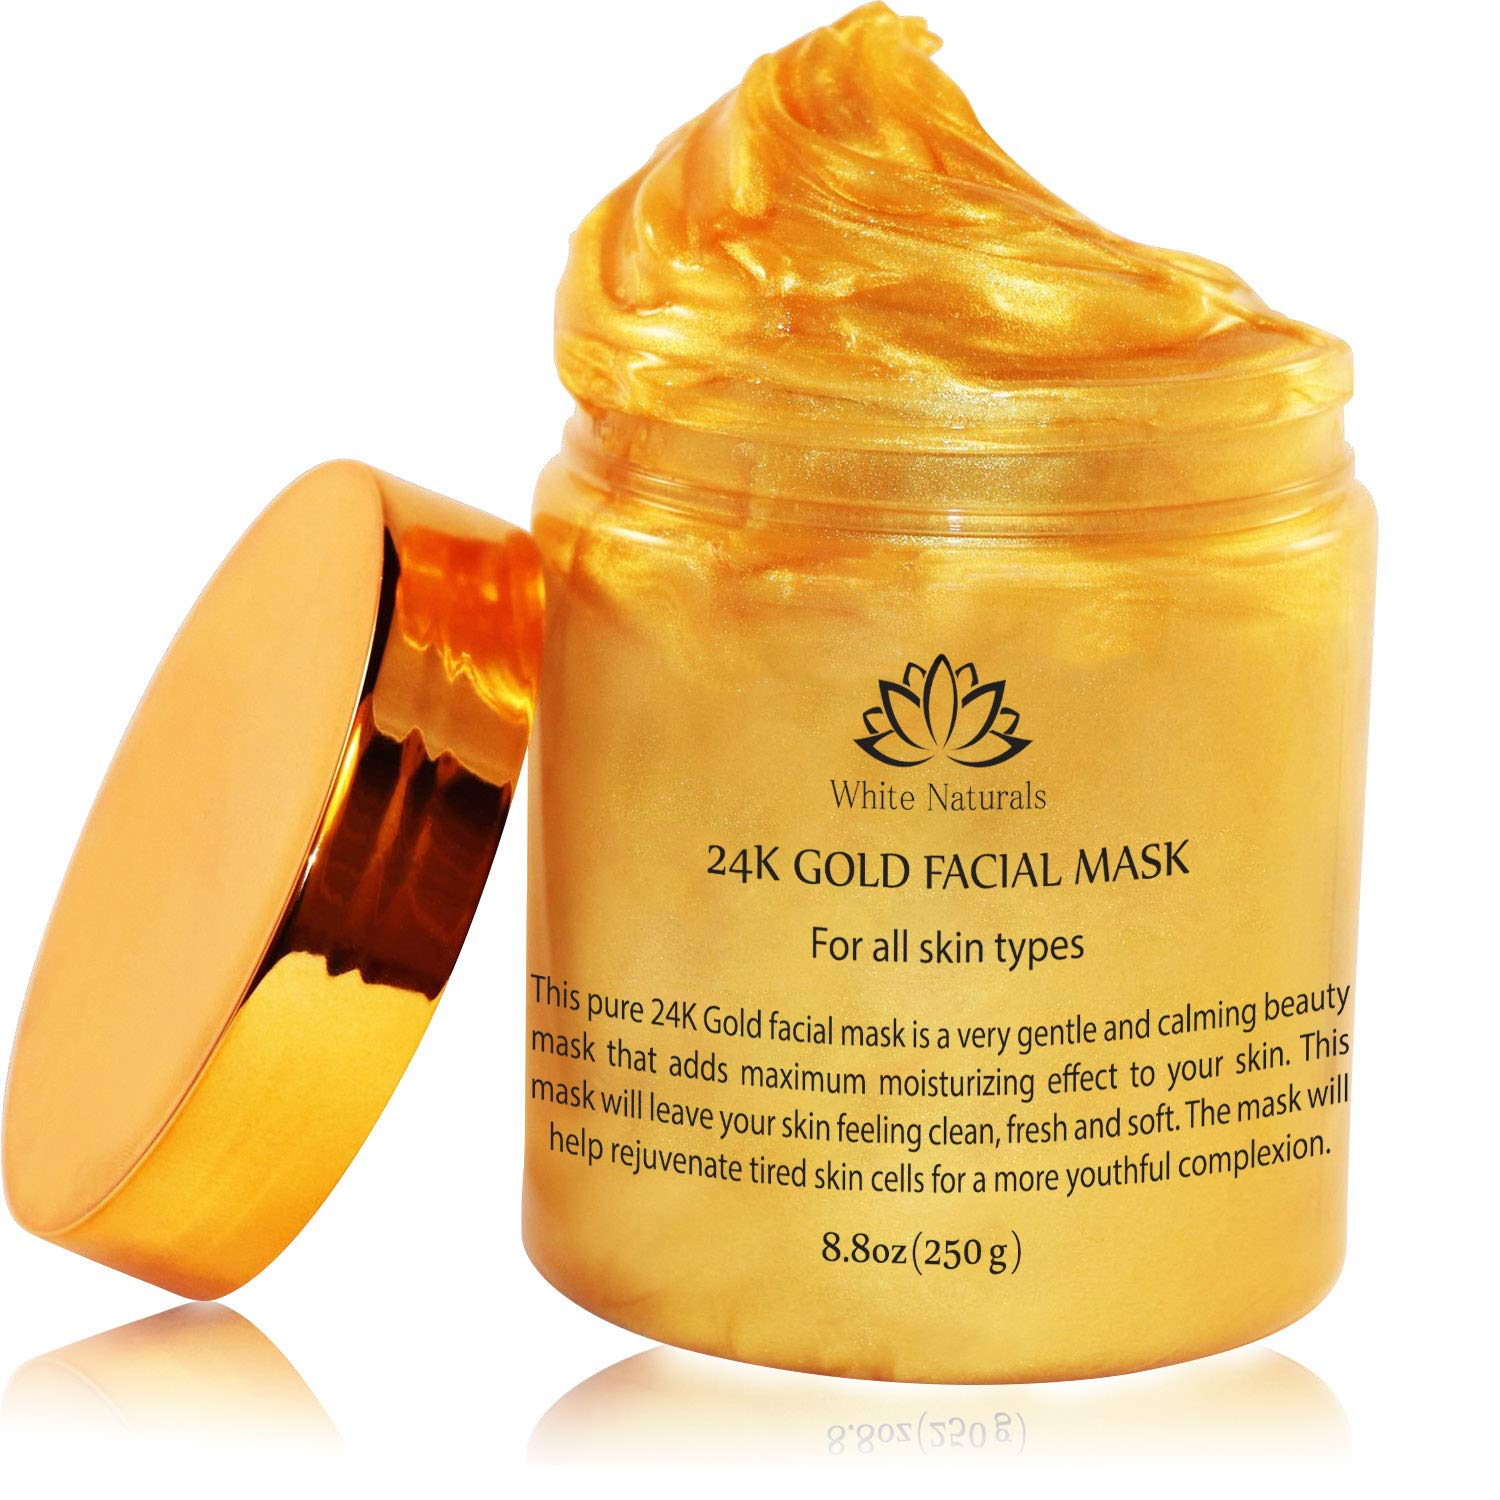 Limited Time Sale! 24K Gold Facial Mask By White Naturals:Rejuvenating Anti-Aging Face Mask For Flawless Skin, Reduces Fine Lines &Wrinkles,Clears Acne,Minimizes Pores,Moisturizes & Firms Up Your Skin